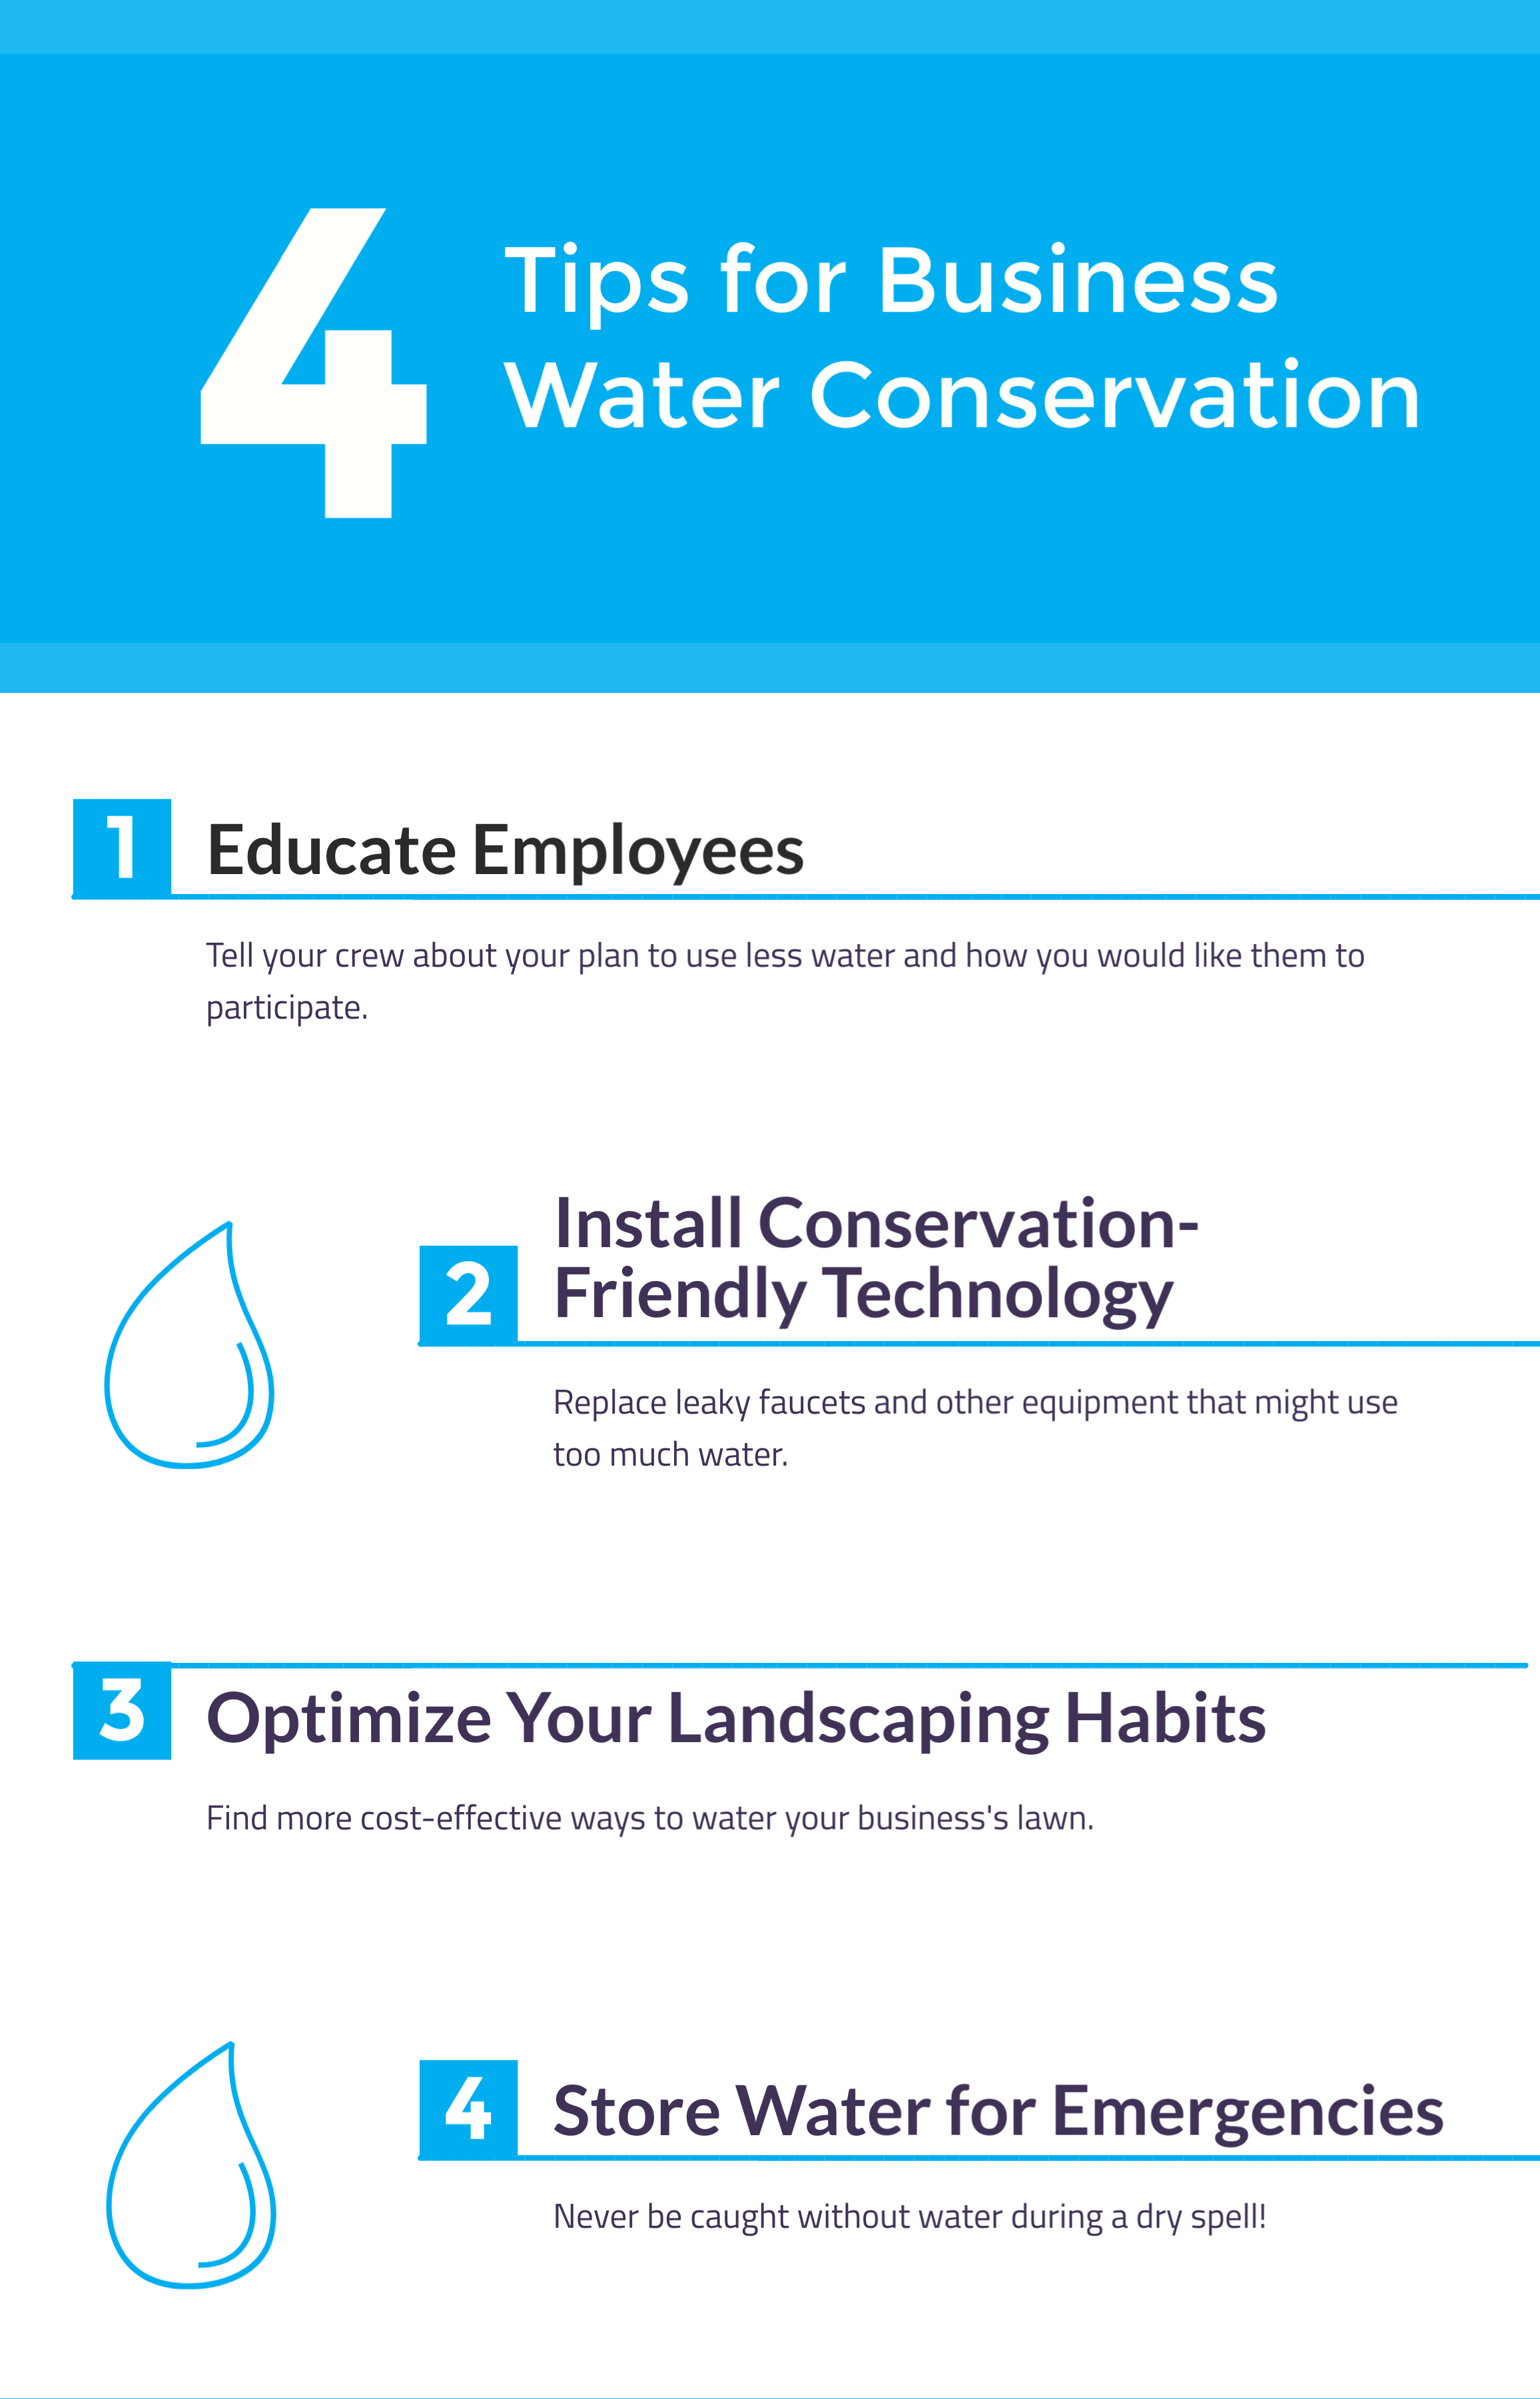 4 Tips for Business Water Conservation, HSI Services, Waller, TX